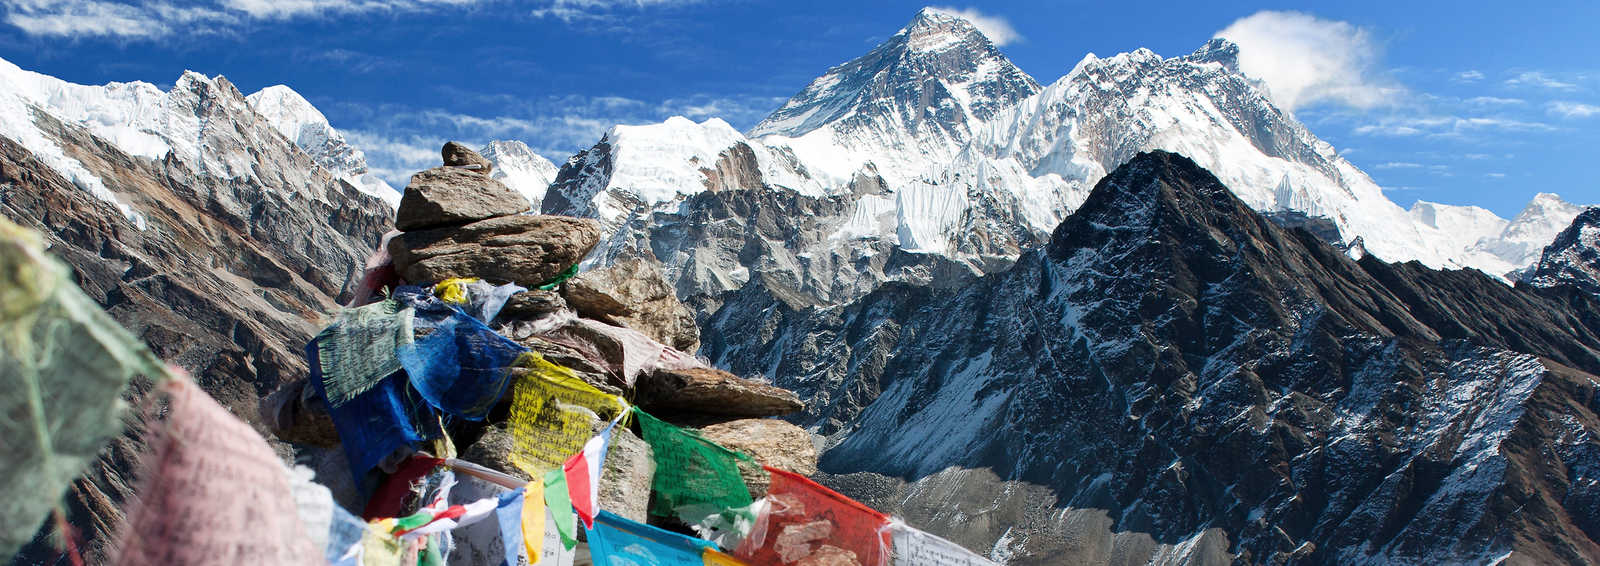 View of everest from Gokyo Ri with prayer flags, Nepal